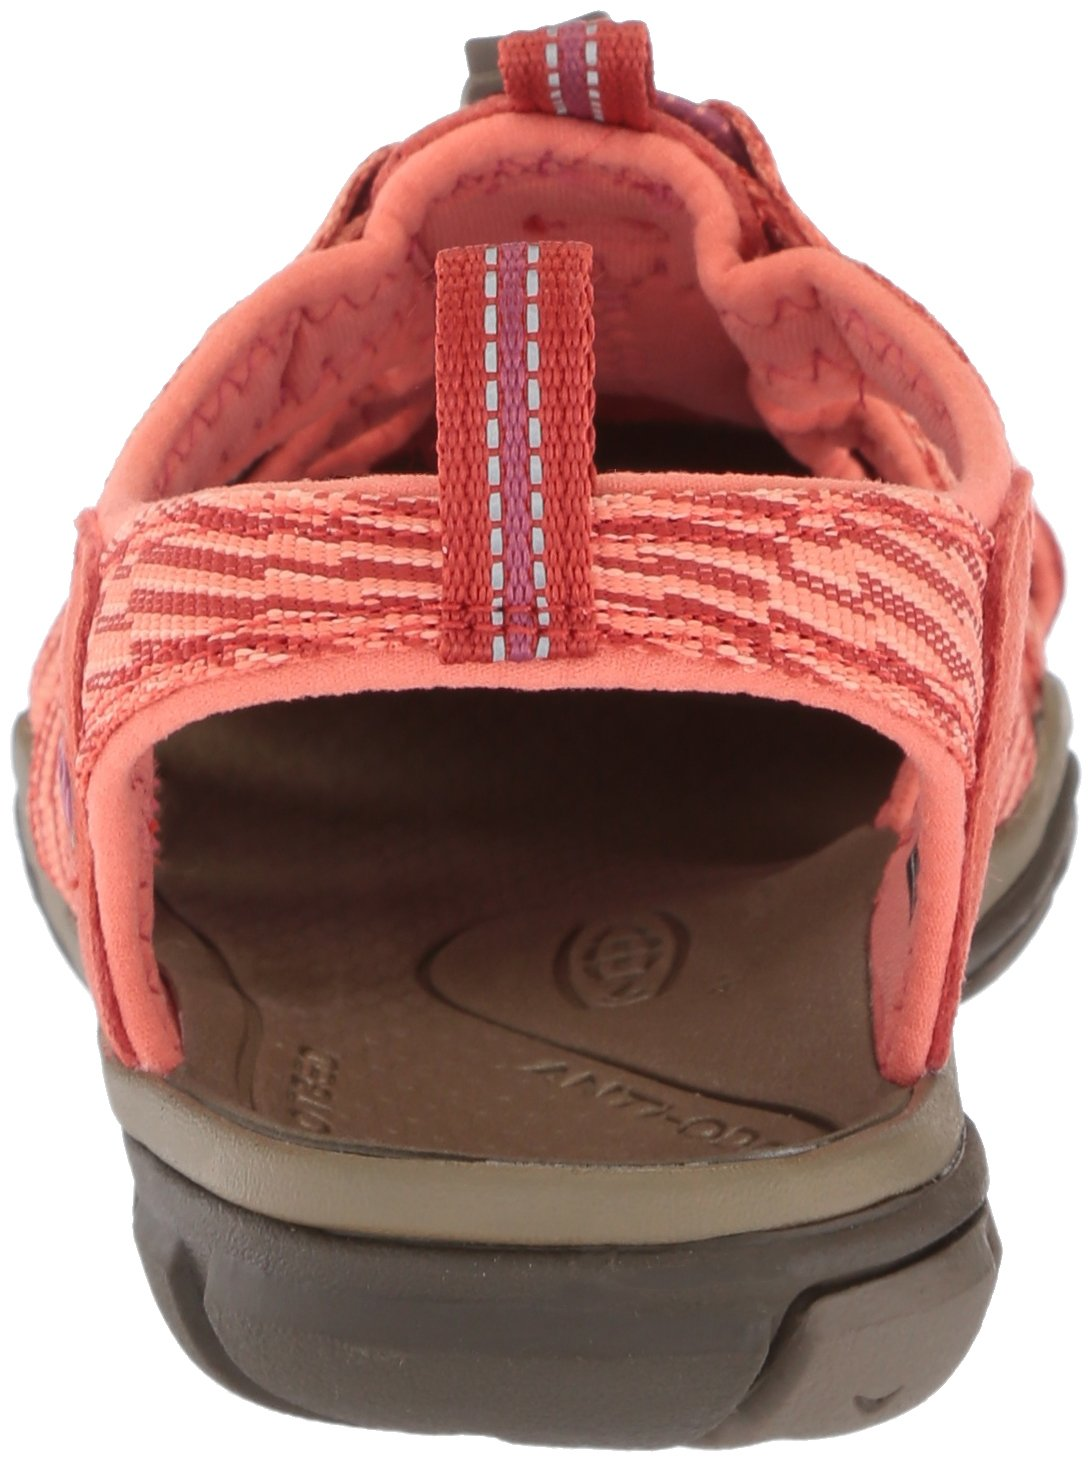 KEEN Women's Clearwater M CNX-W Sandal B06ZZMTX74 6 M Clearwater US|Summer Fig/Crabapple e2b62f